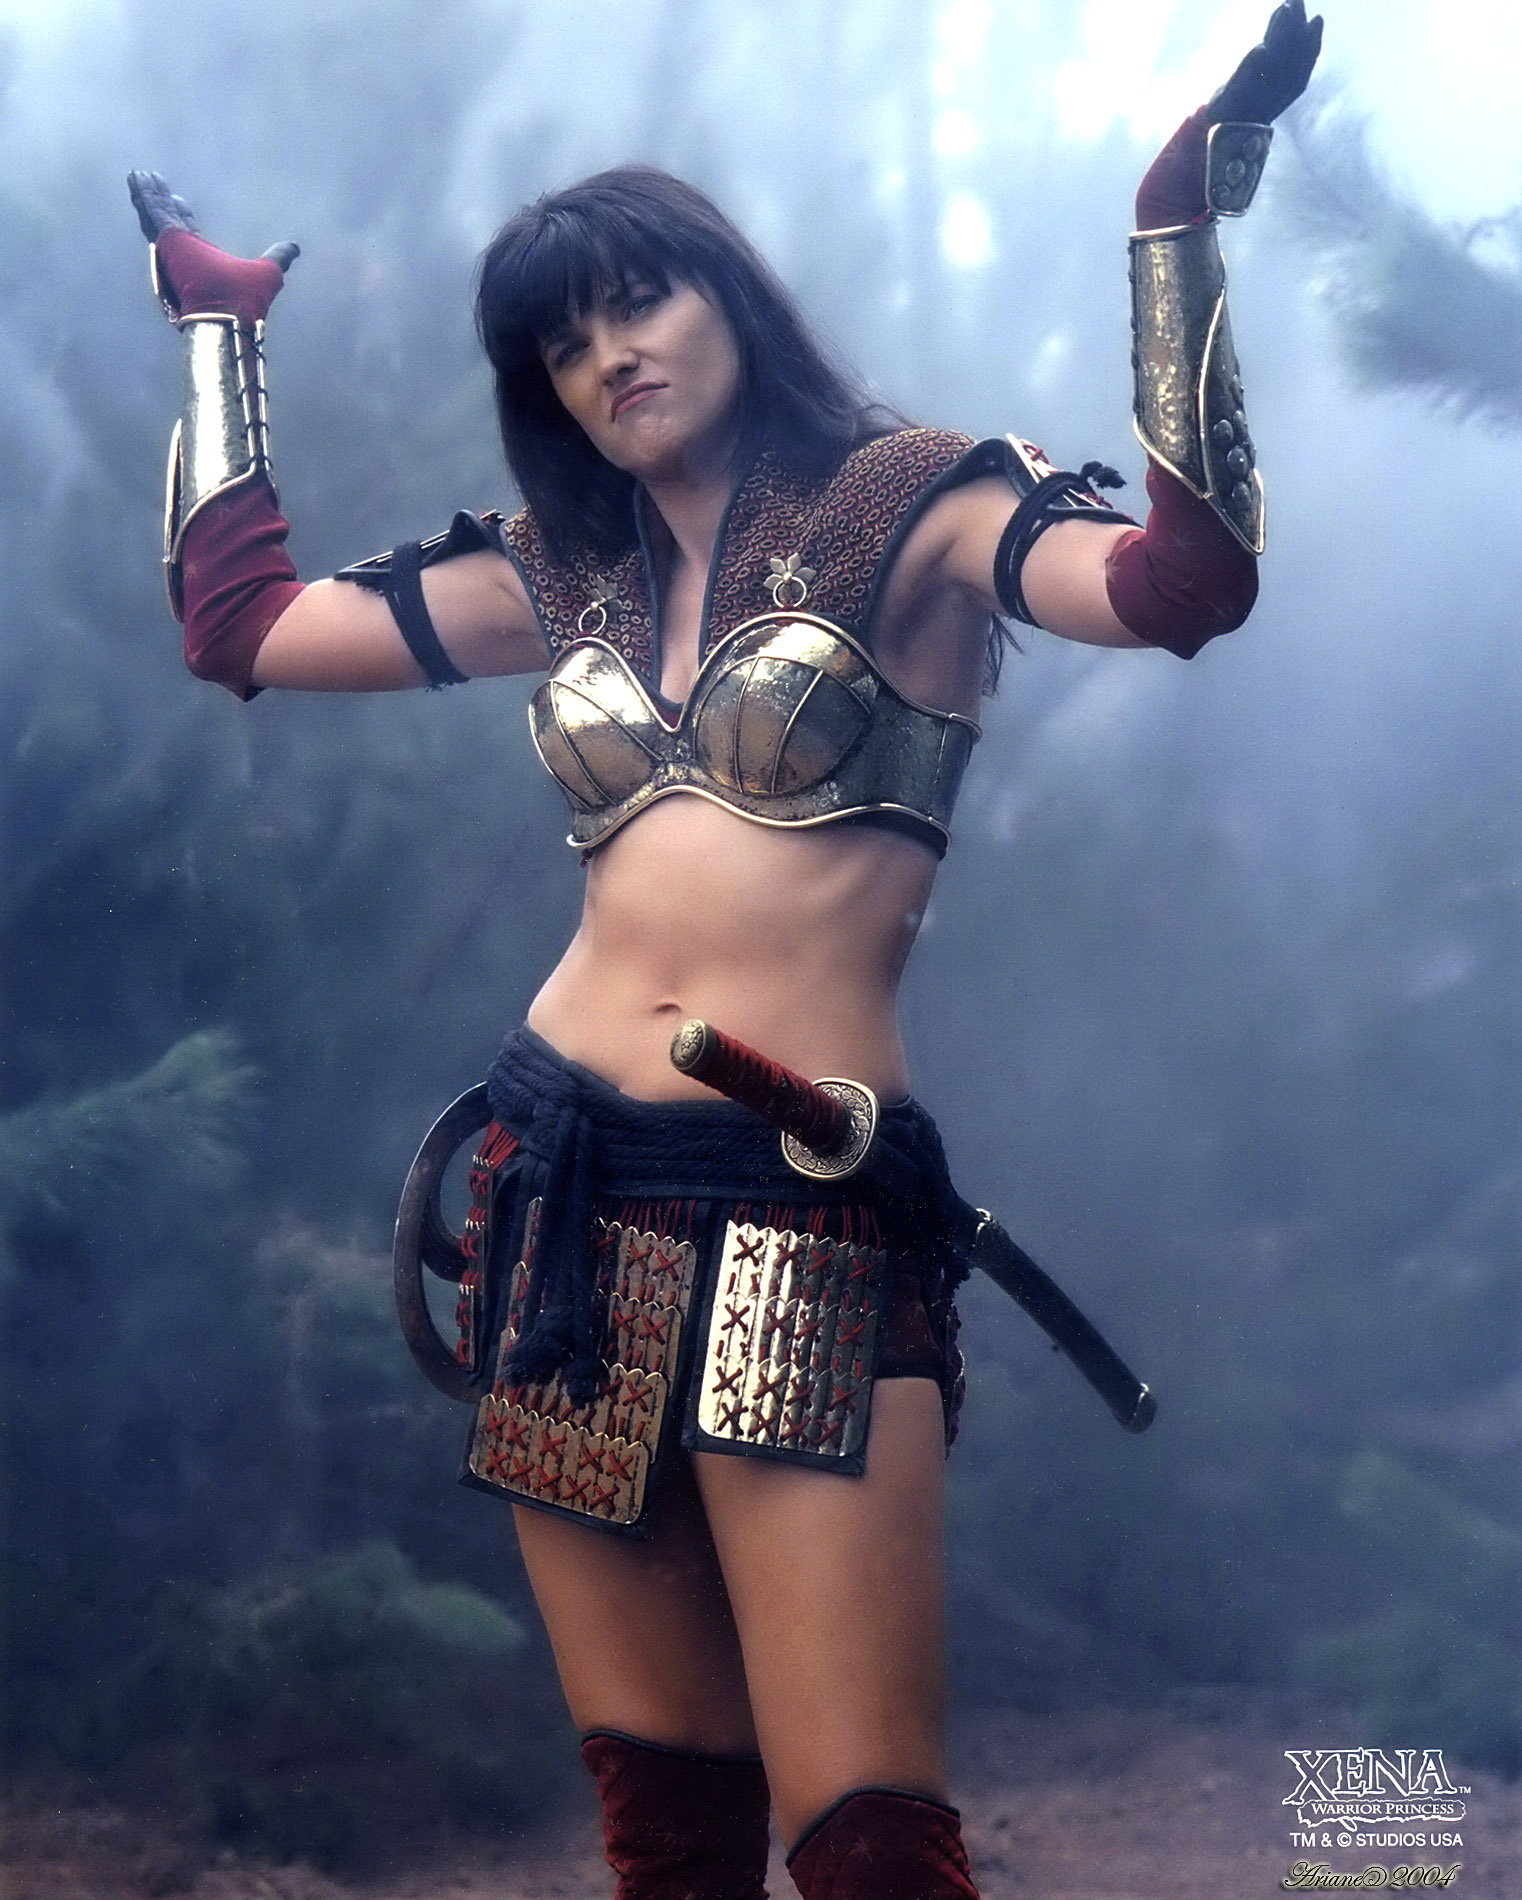 naked images of the actress who played xena